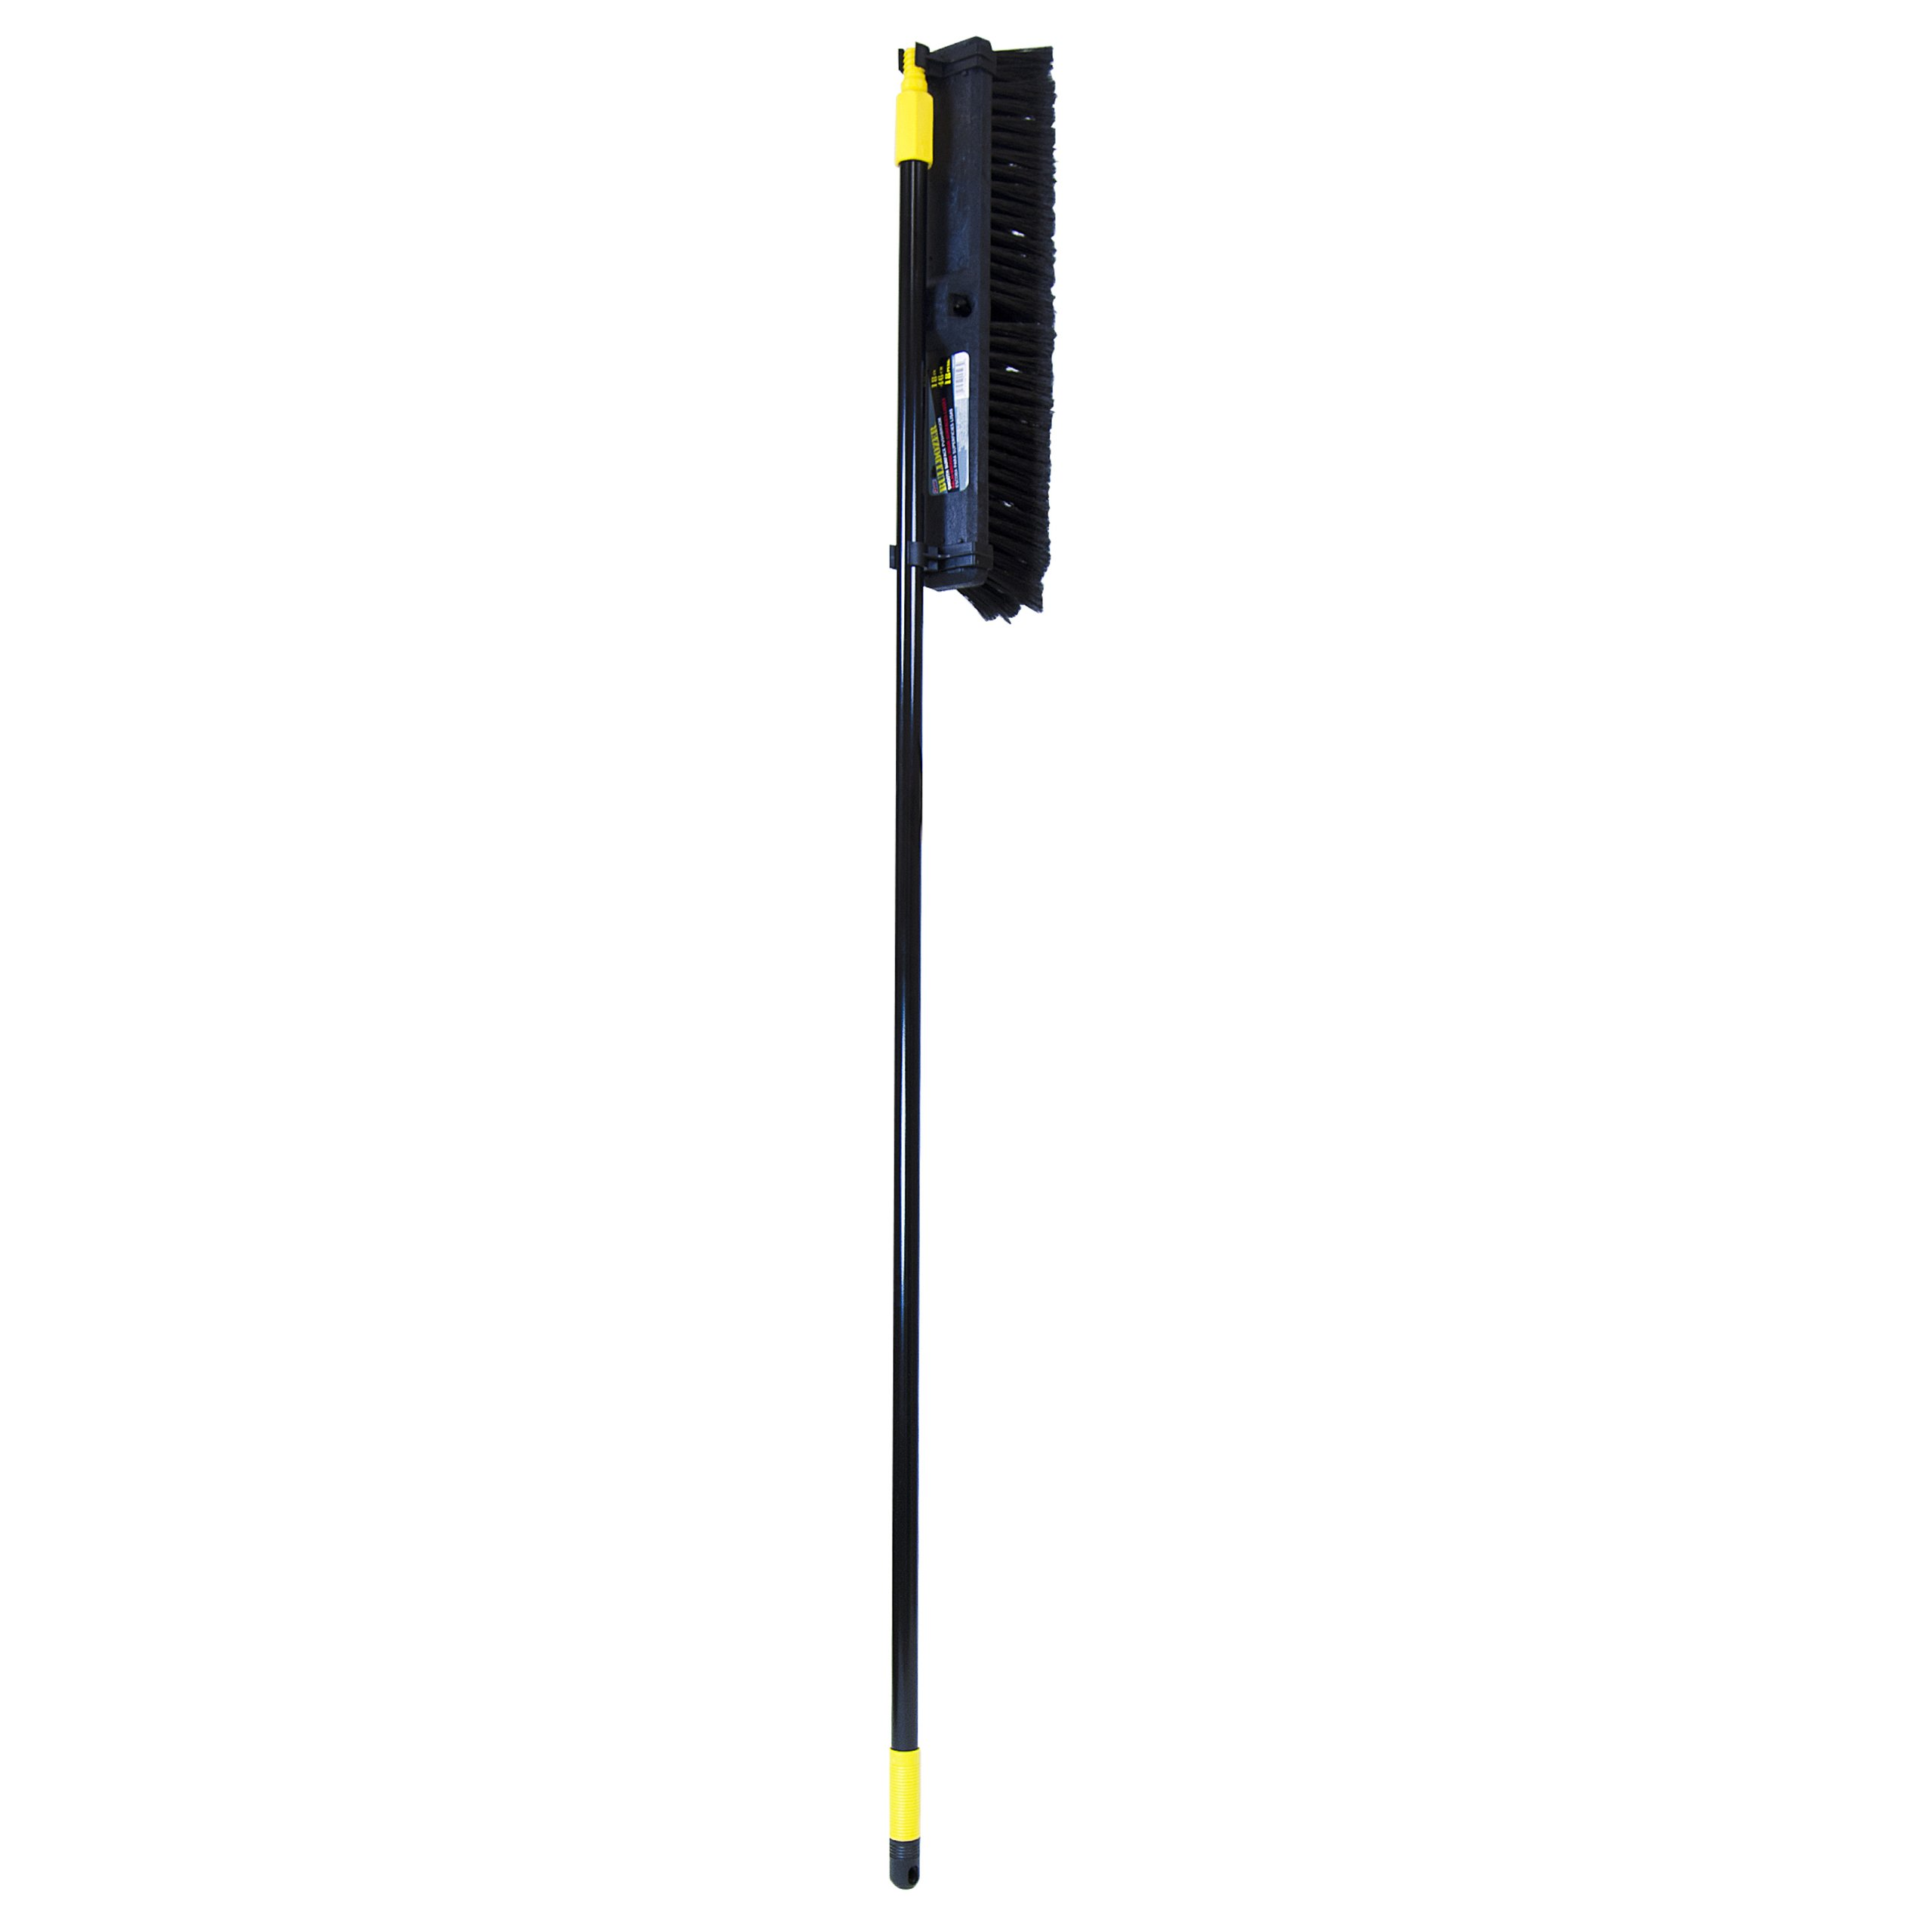 Quickie Bulldozer 18-Inch Smooth Surface Push Broom by Quickie